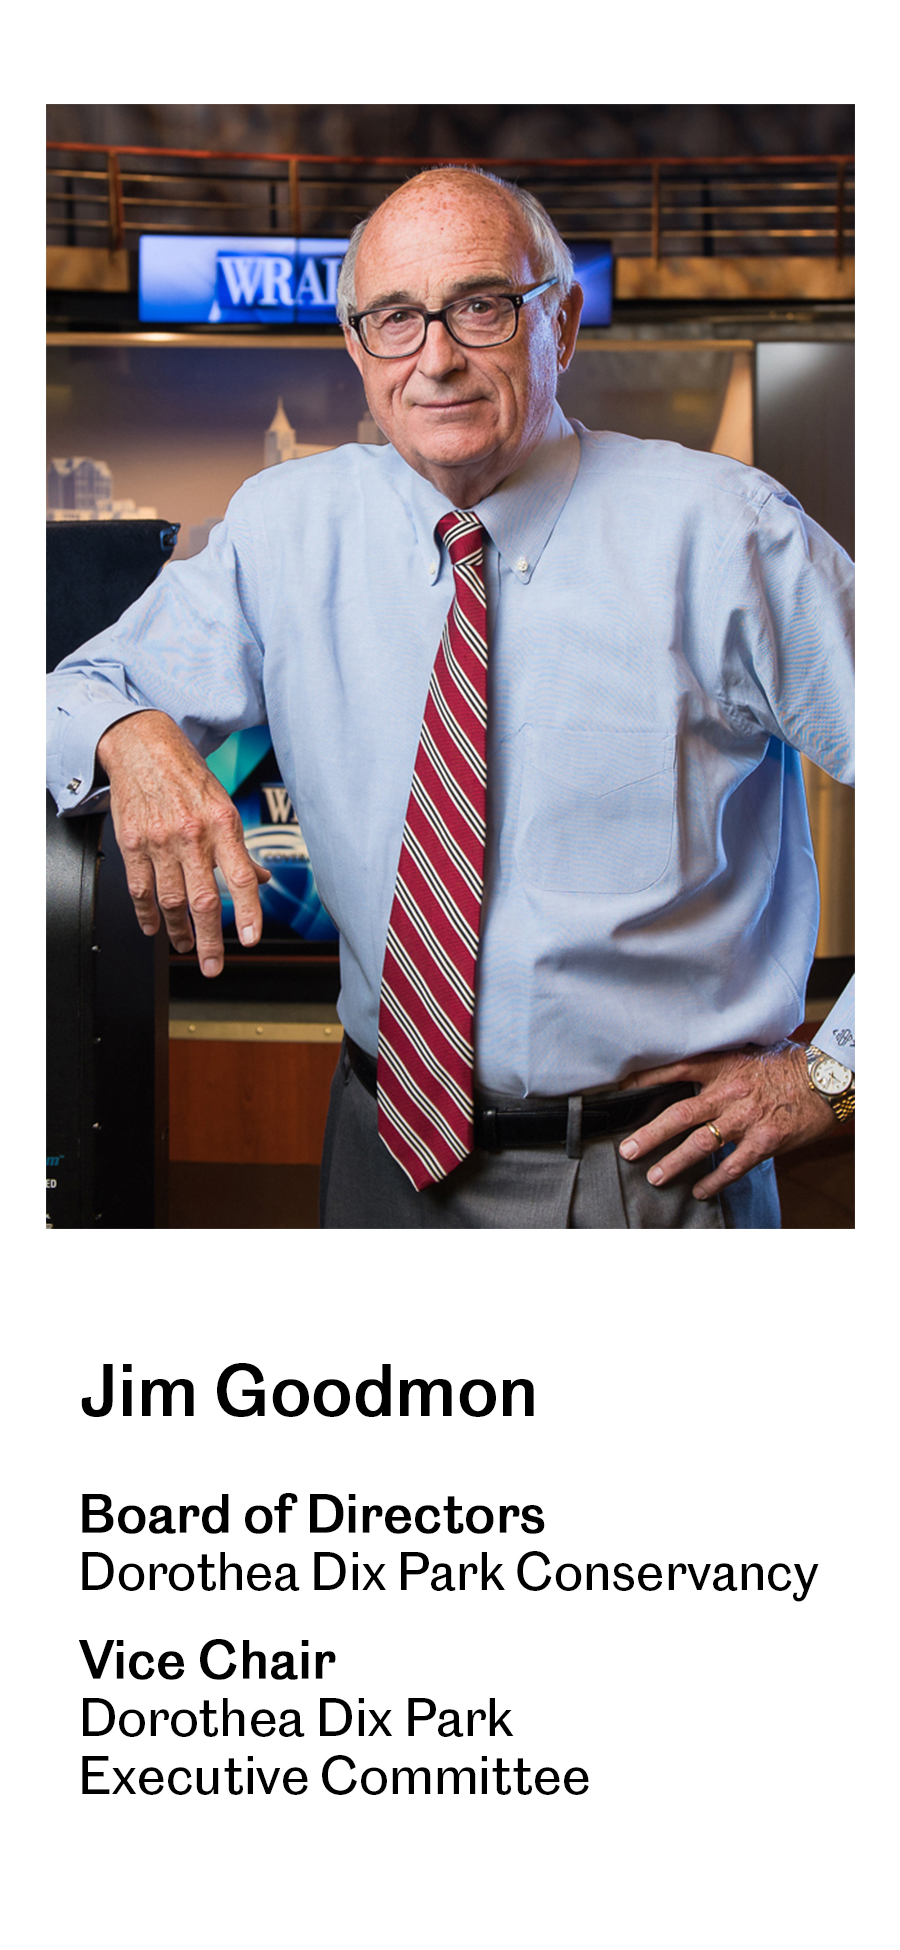 Jim Goodmon Headshot